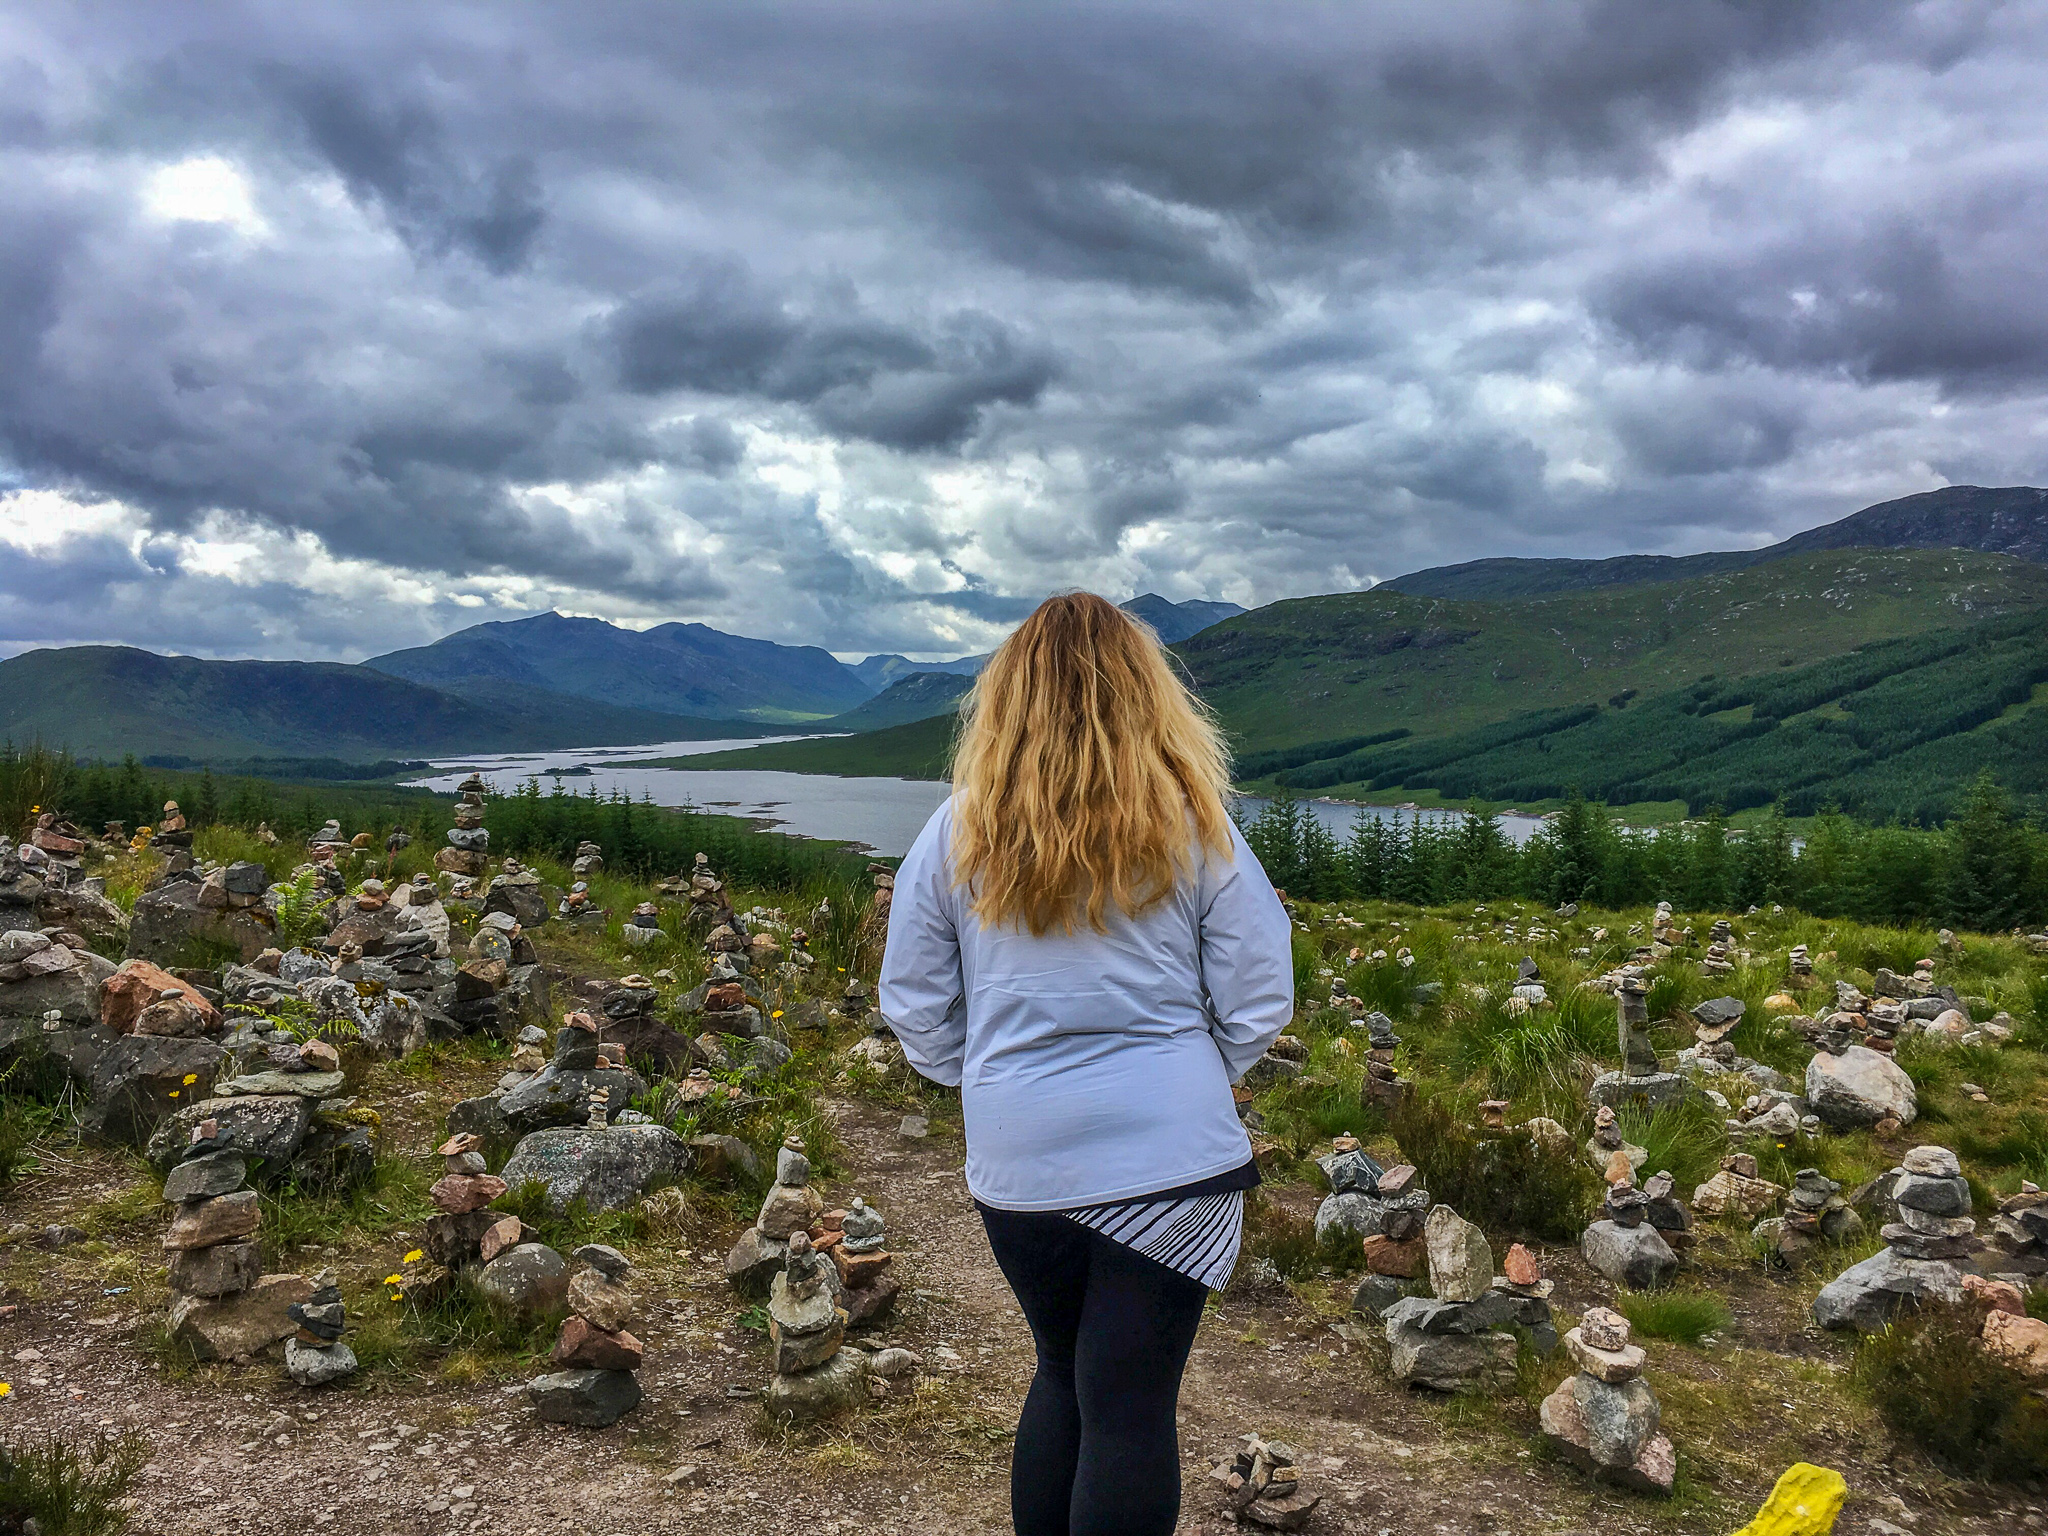 solo travel in your 30s? go to scotland